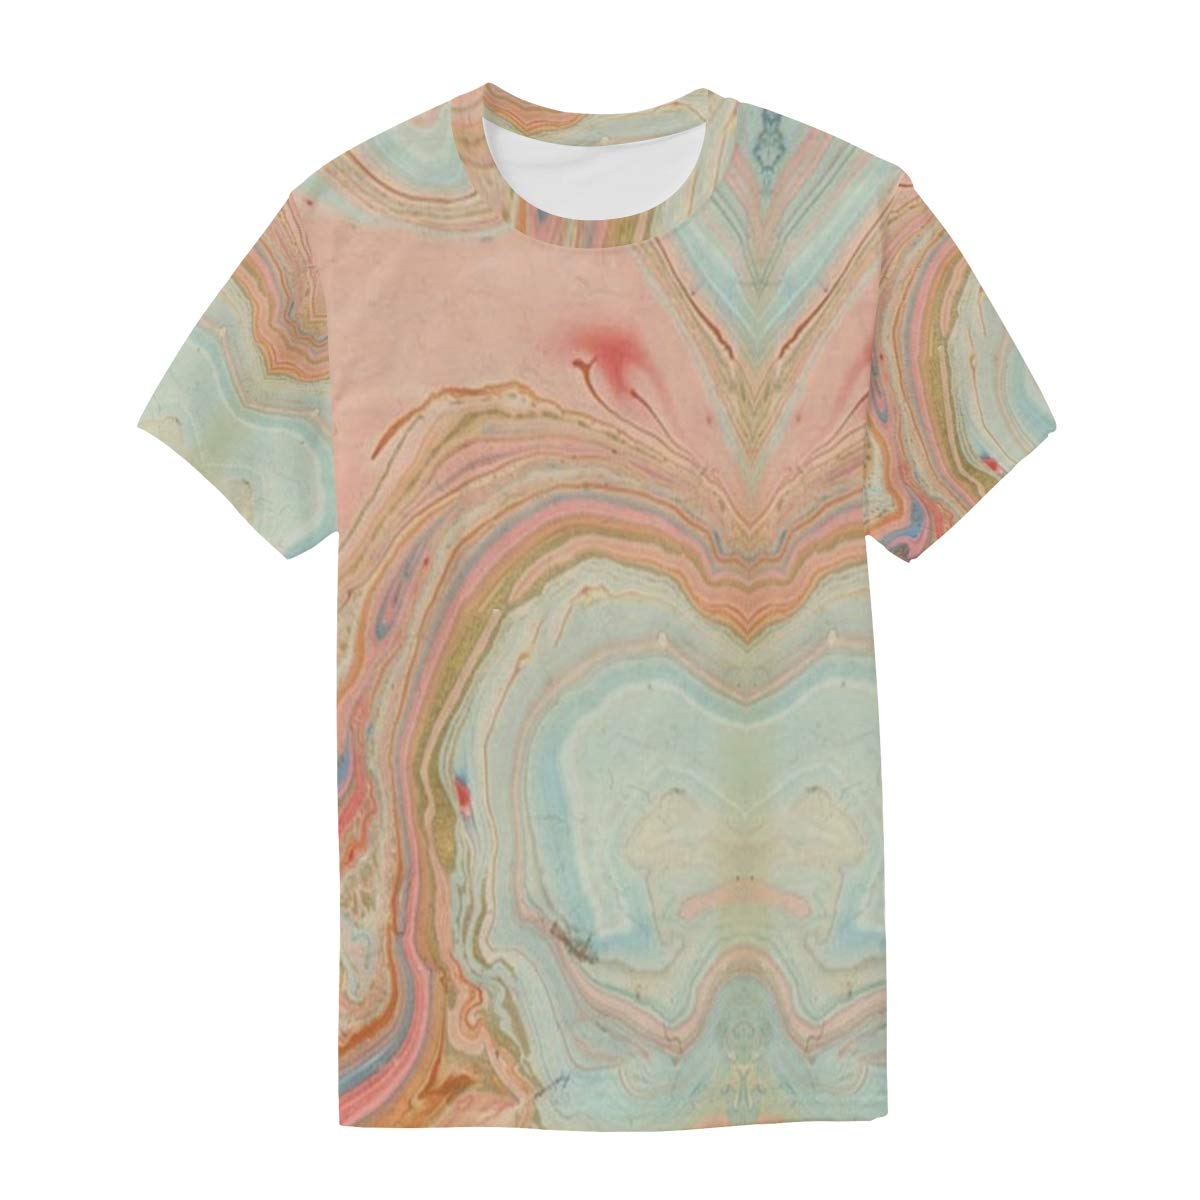 Horatiood Huberyyd Peach Marble Swirl Mens T Shirts Graphic Funny Body Print Short T-Shirt Unisex Pullover Blouse